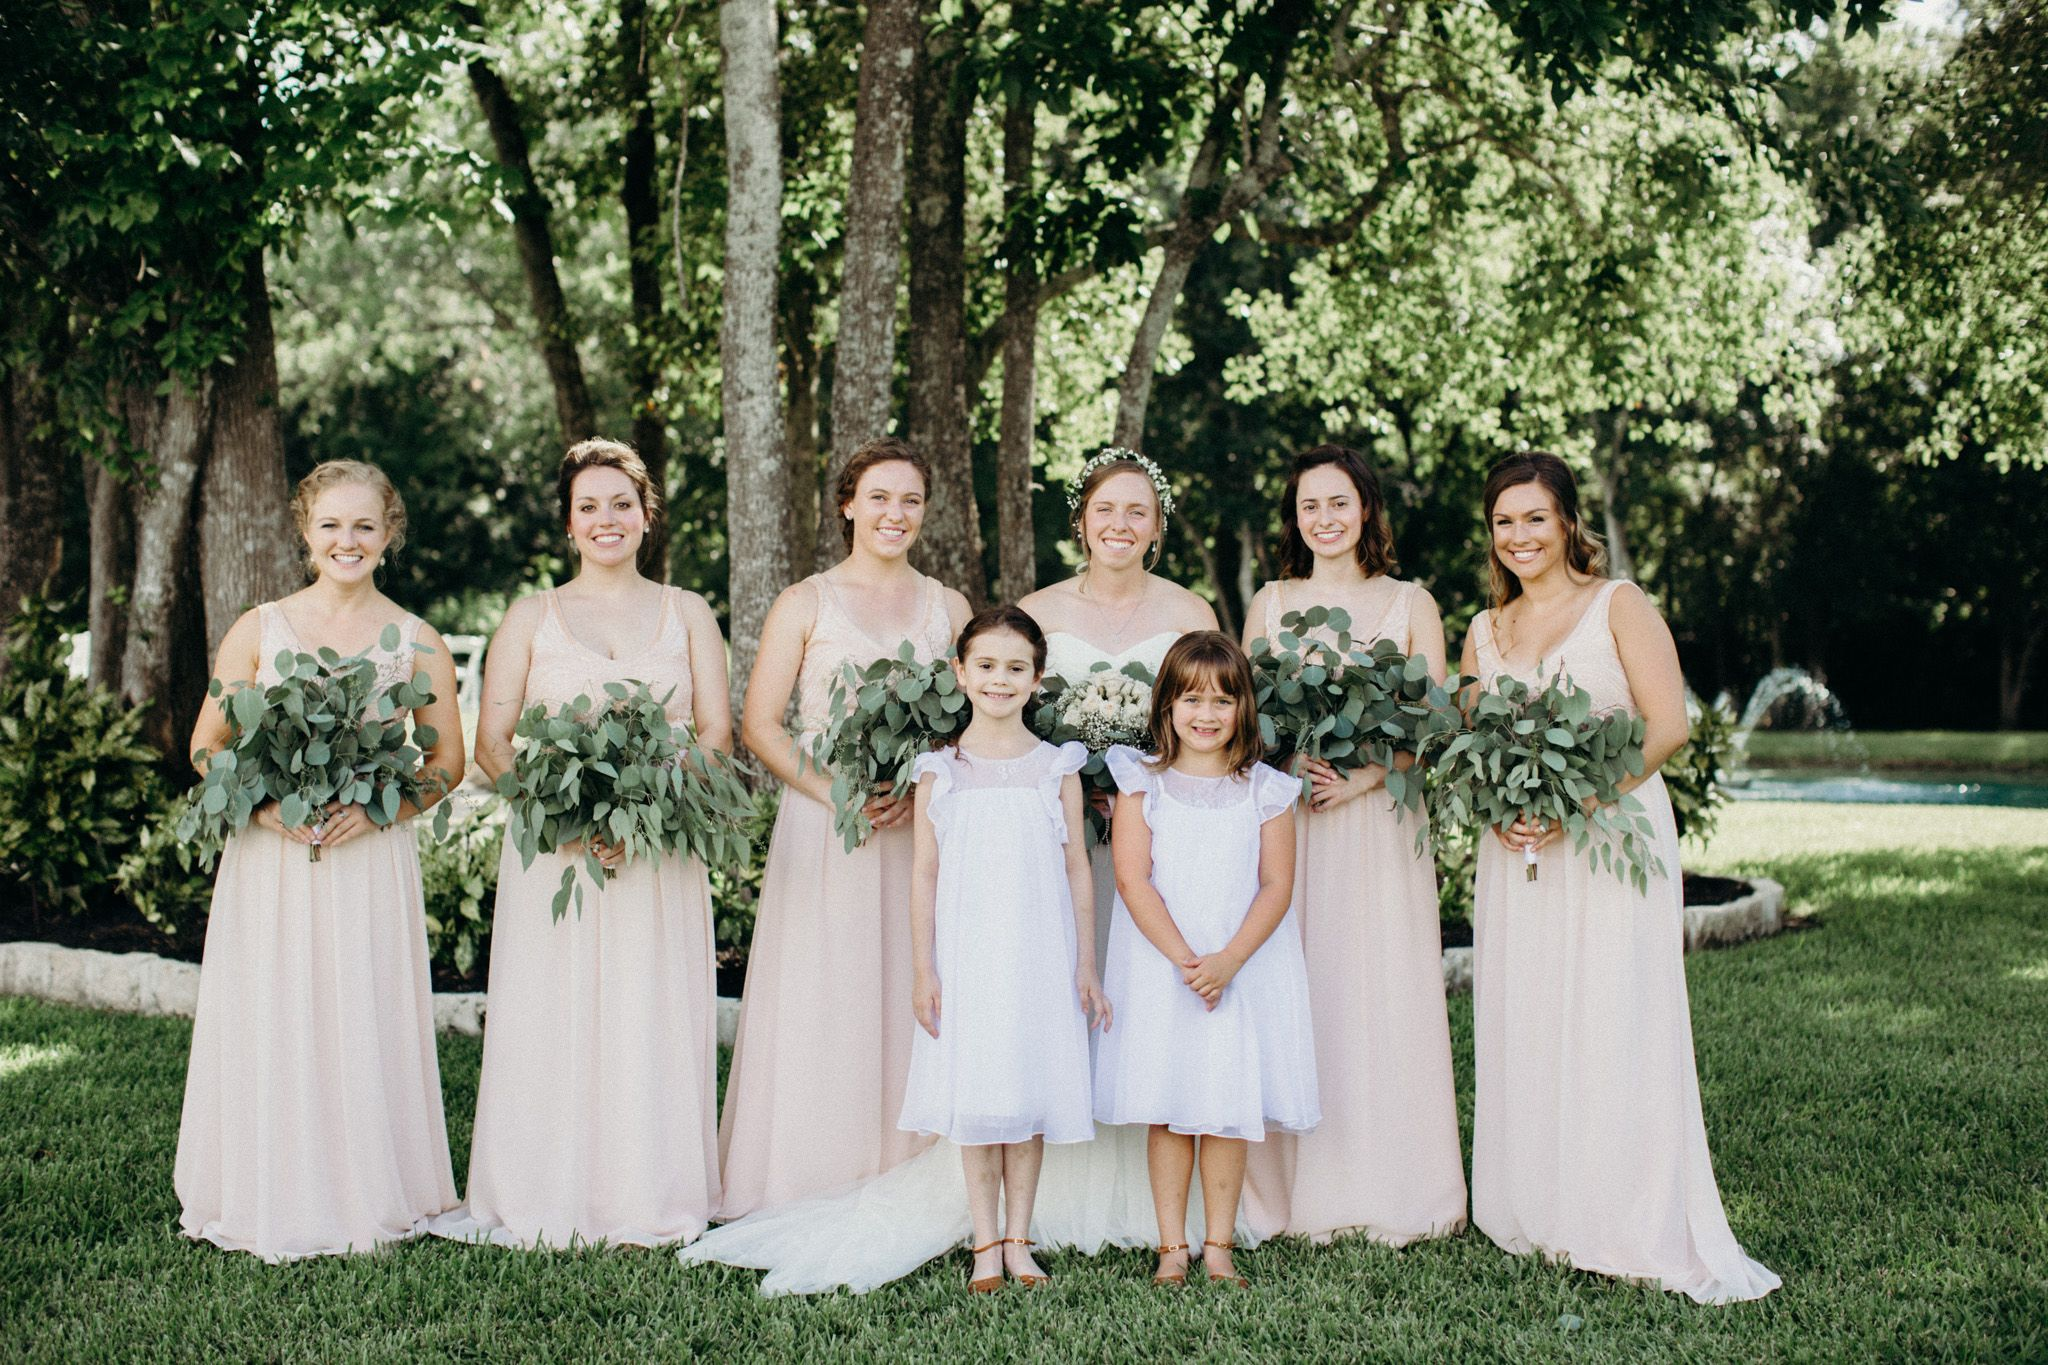 Long blush bridesmaid dresses and bouquets with tons of greenery long blush bridesmaid dresses and bouquets with tons of greenery the prettiest bridal ombrellifo Choice Image